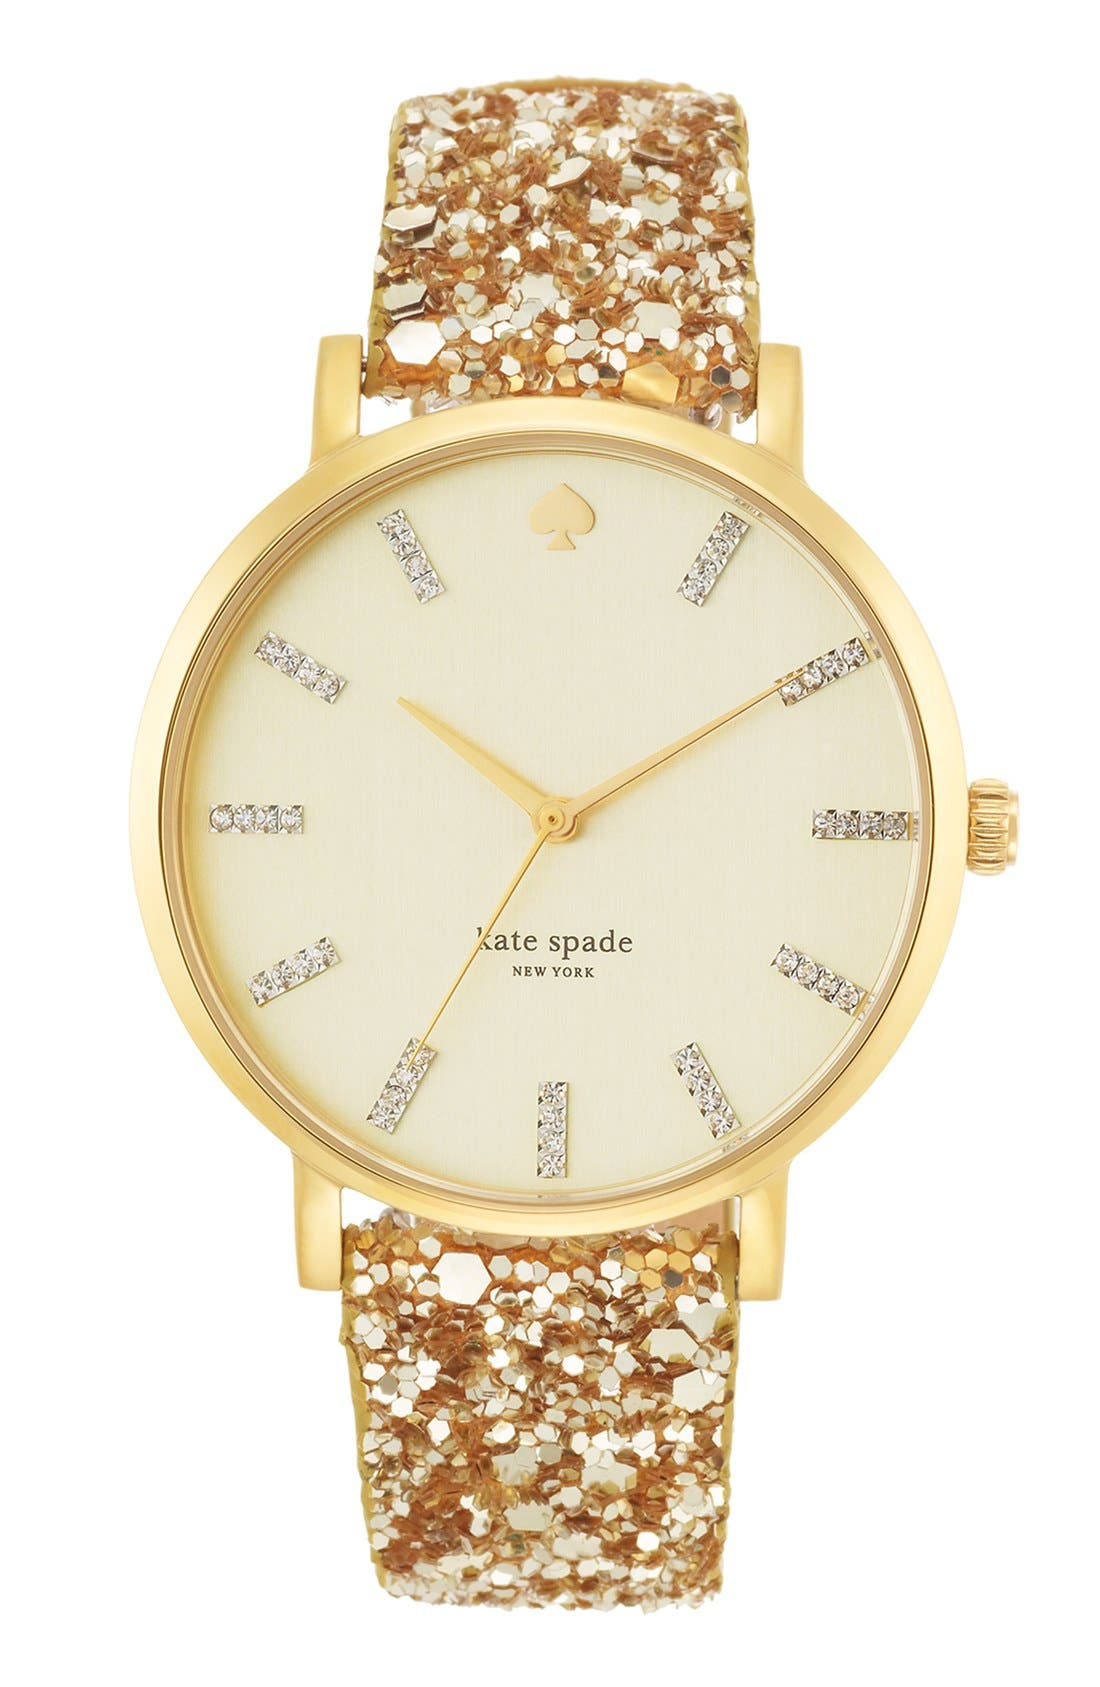 Main Image - kate spade new york 'metro grand' boxed watch set